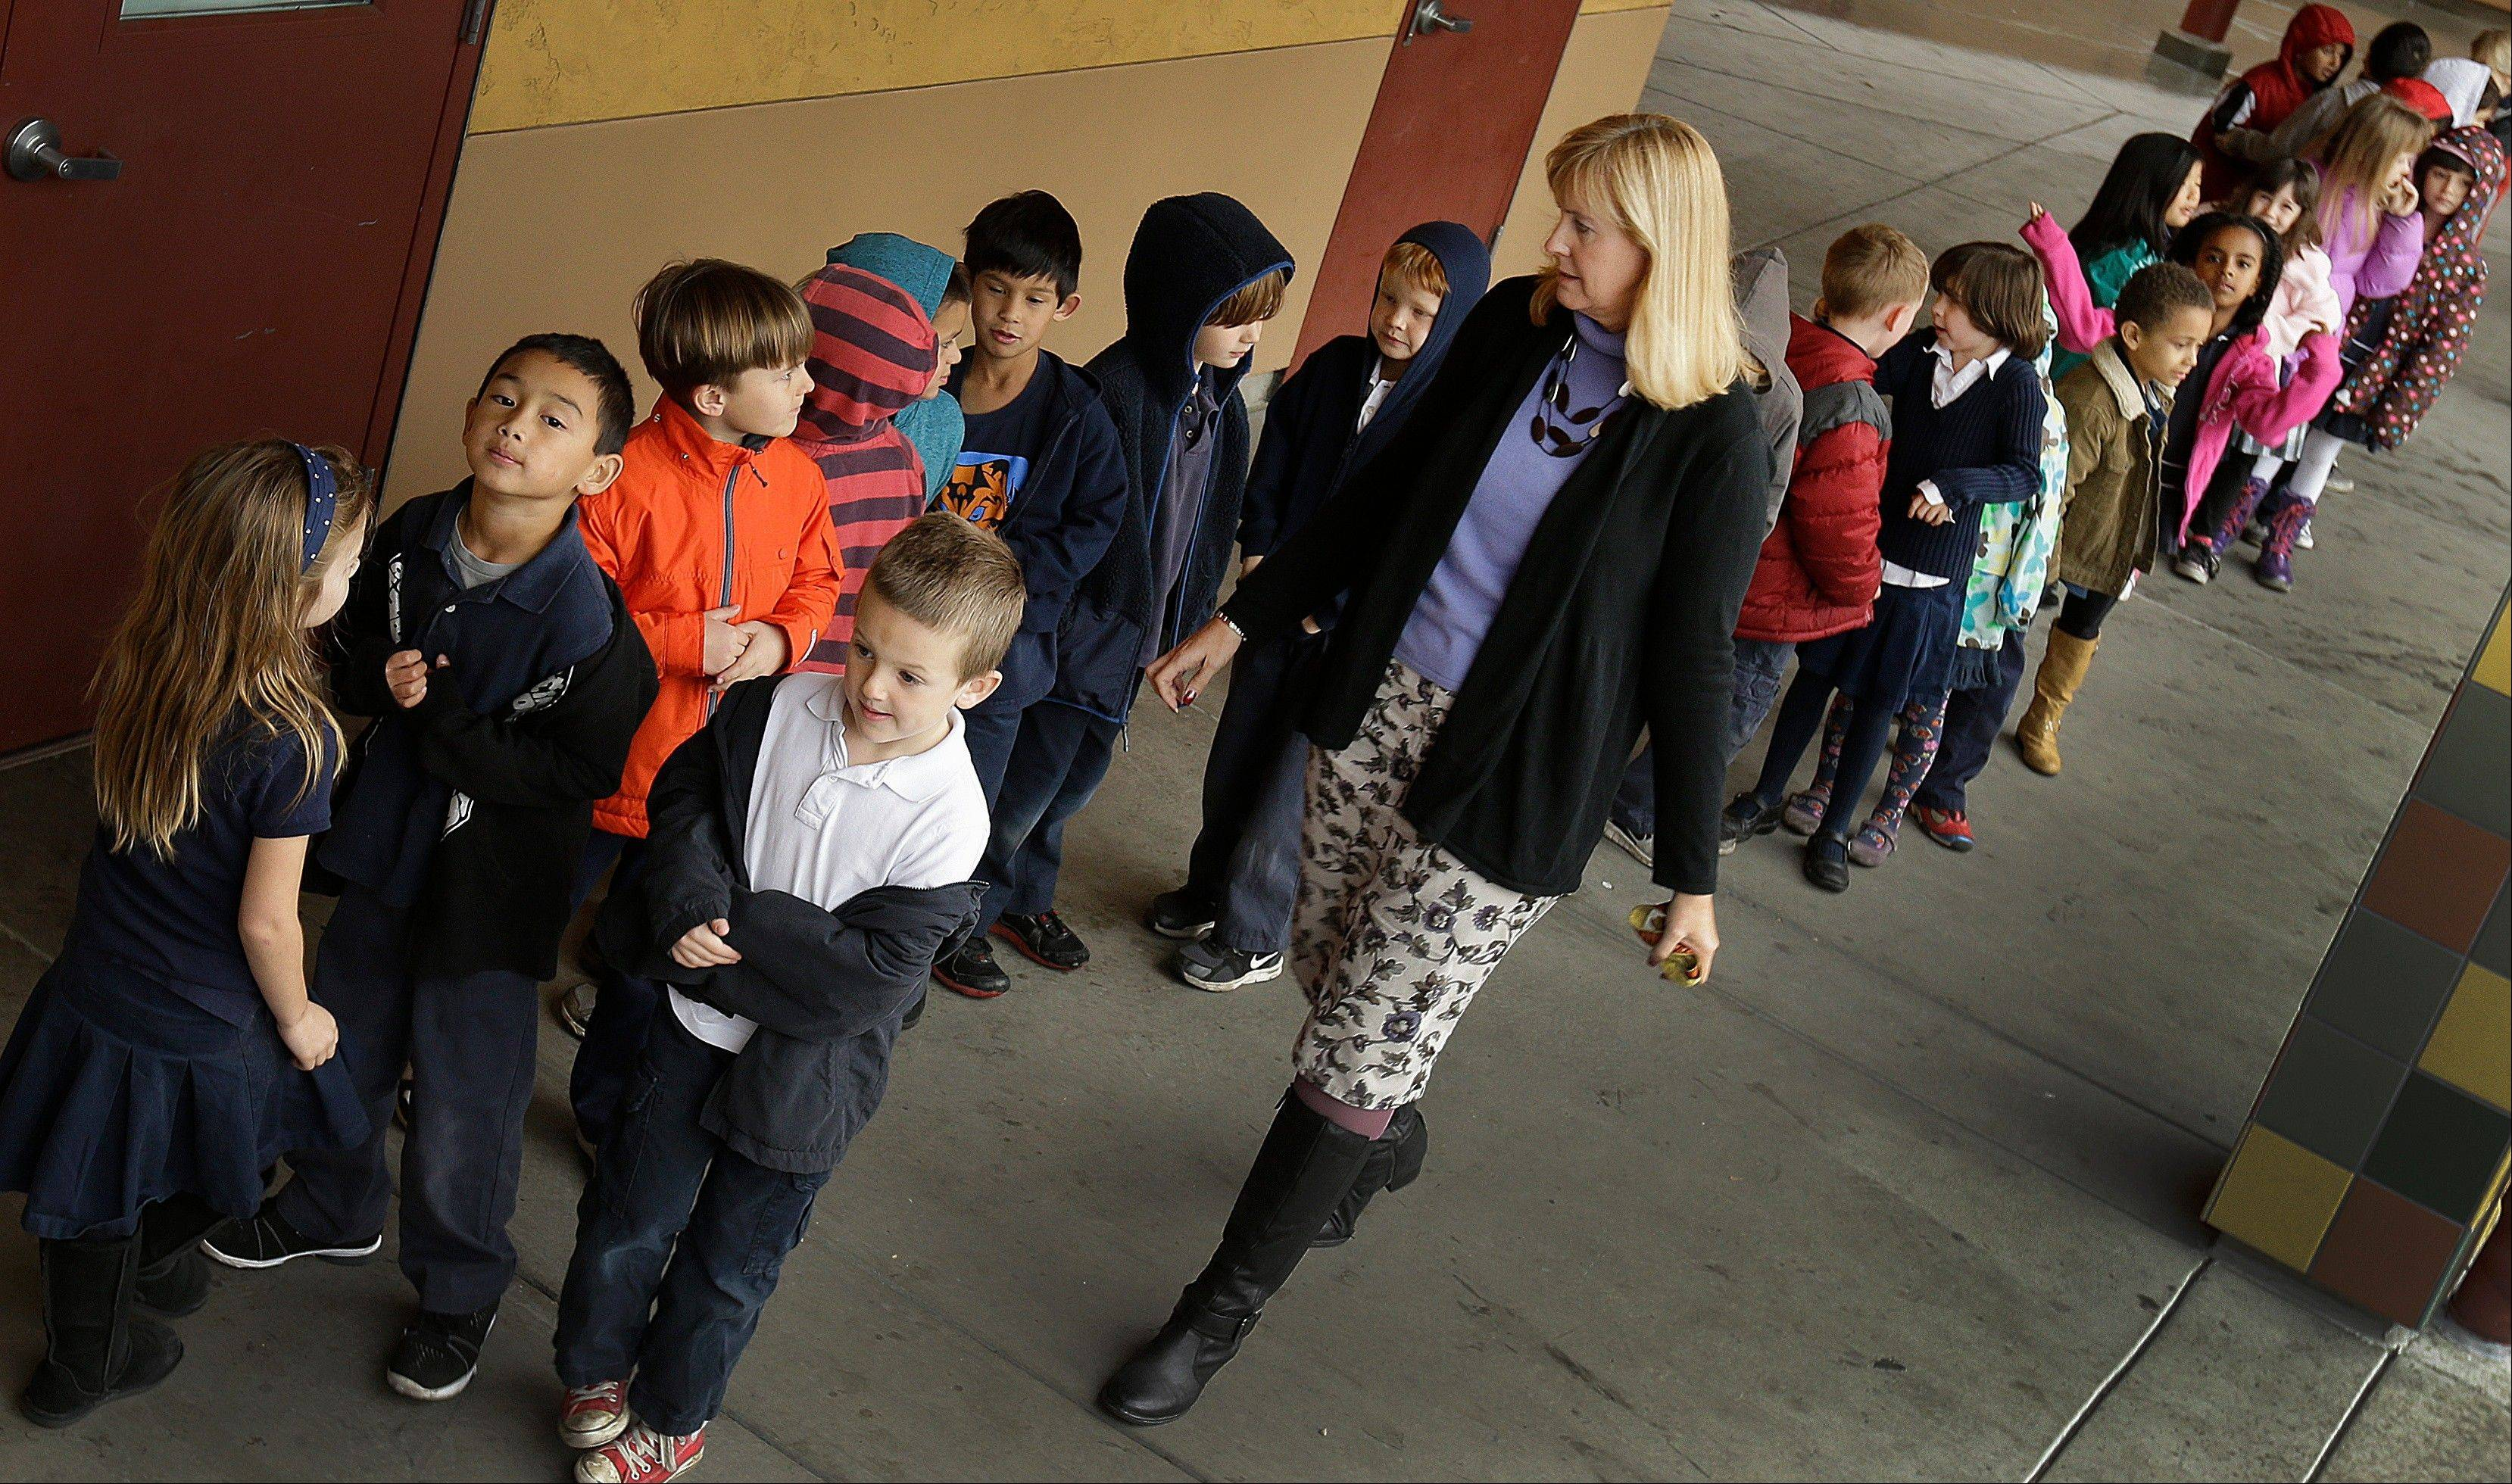 First grade teacher Lynda Jensen walks with her class of 30 children at Willow Glenn Elementary School in San Jose, Calif. The Common Core State Standards have been adopted by 45 states and the District of Columbia with the goal of making sure the nation's high school graduates leave school ready for college or a job.